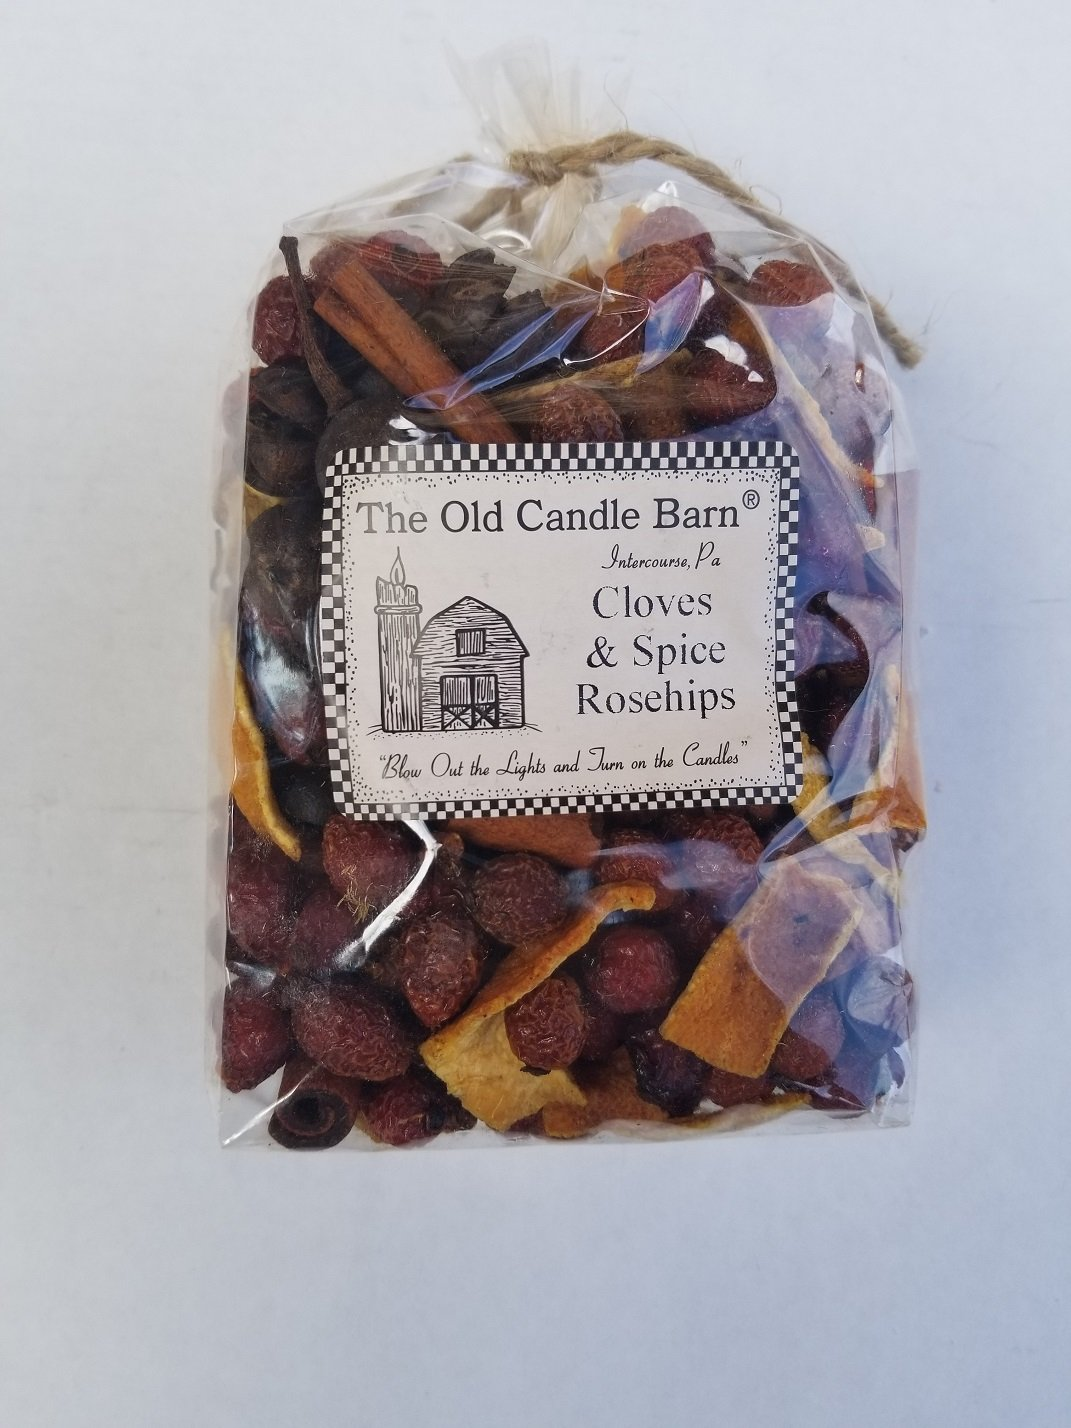 Cloves & Spice Rosehips - Well Scented Potpourri - Made In USA - Perfect Bowl Filler or Home Decoration by Old Candle Barn